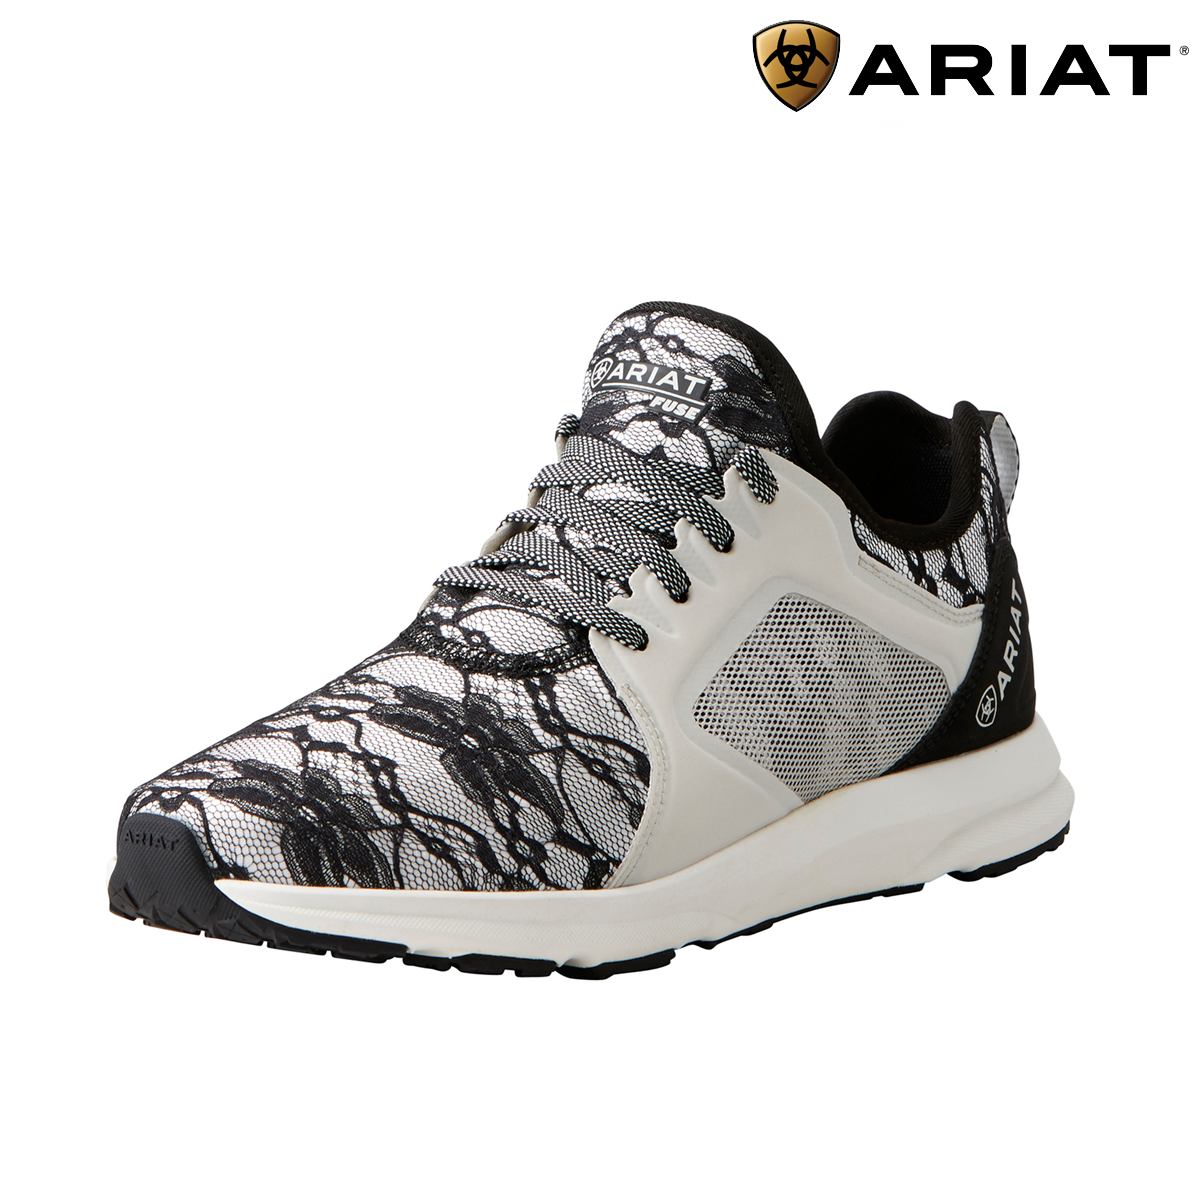 Ariat Fuse Womens Trainers - Black Lace SALE  FREE UK Shipping